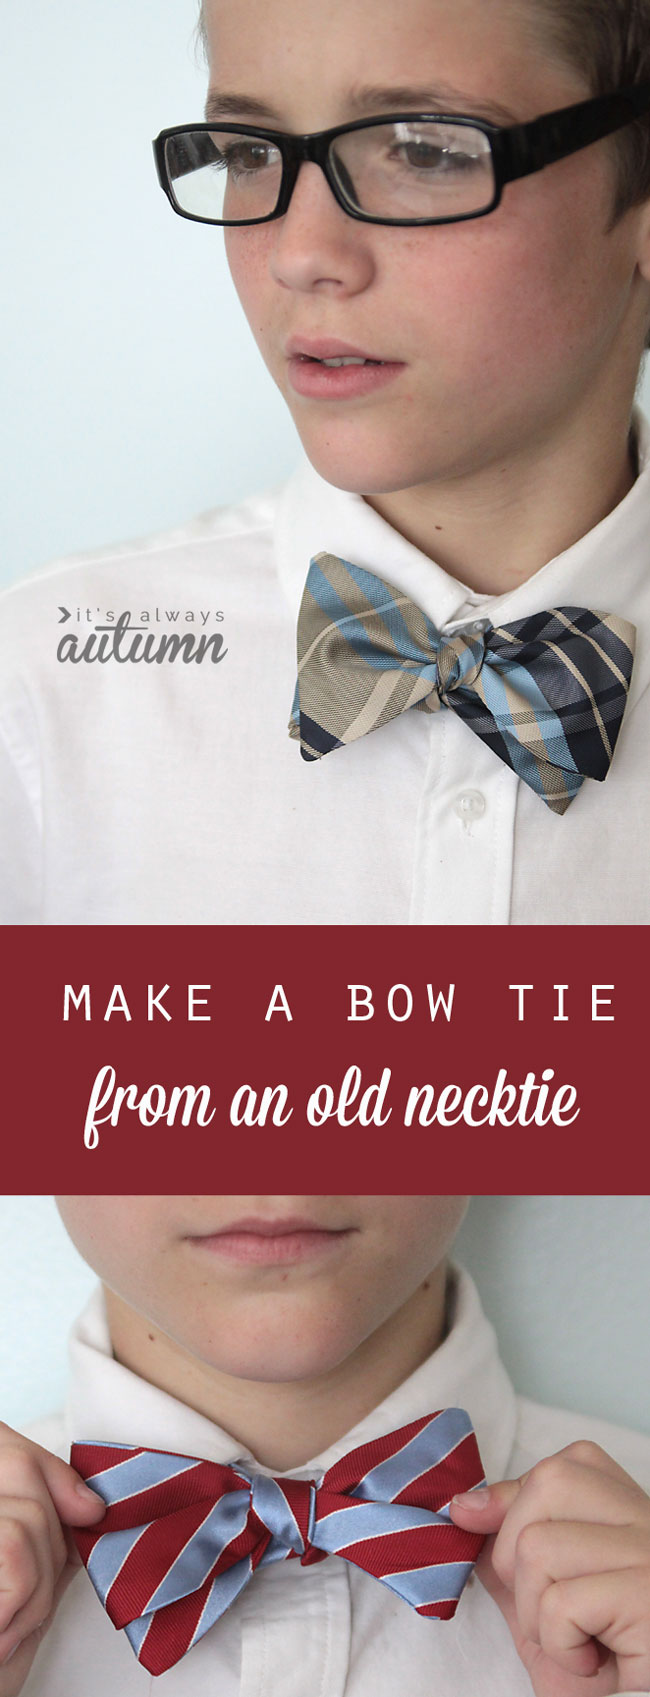 how to make a bow tie from a necktie - grew pattern and sewing tutorial - great teen boy gift!